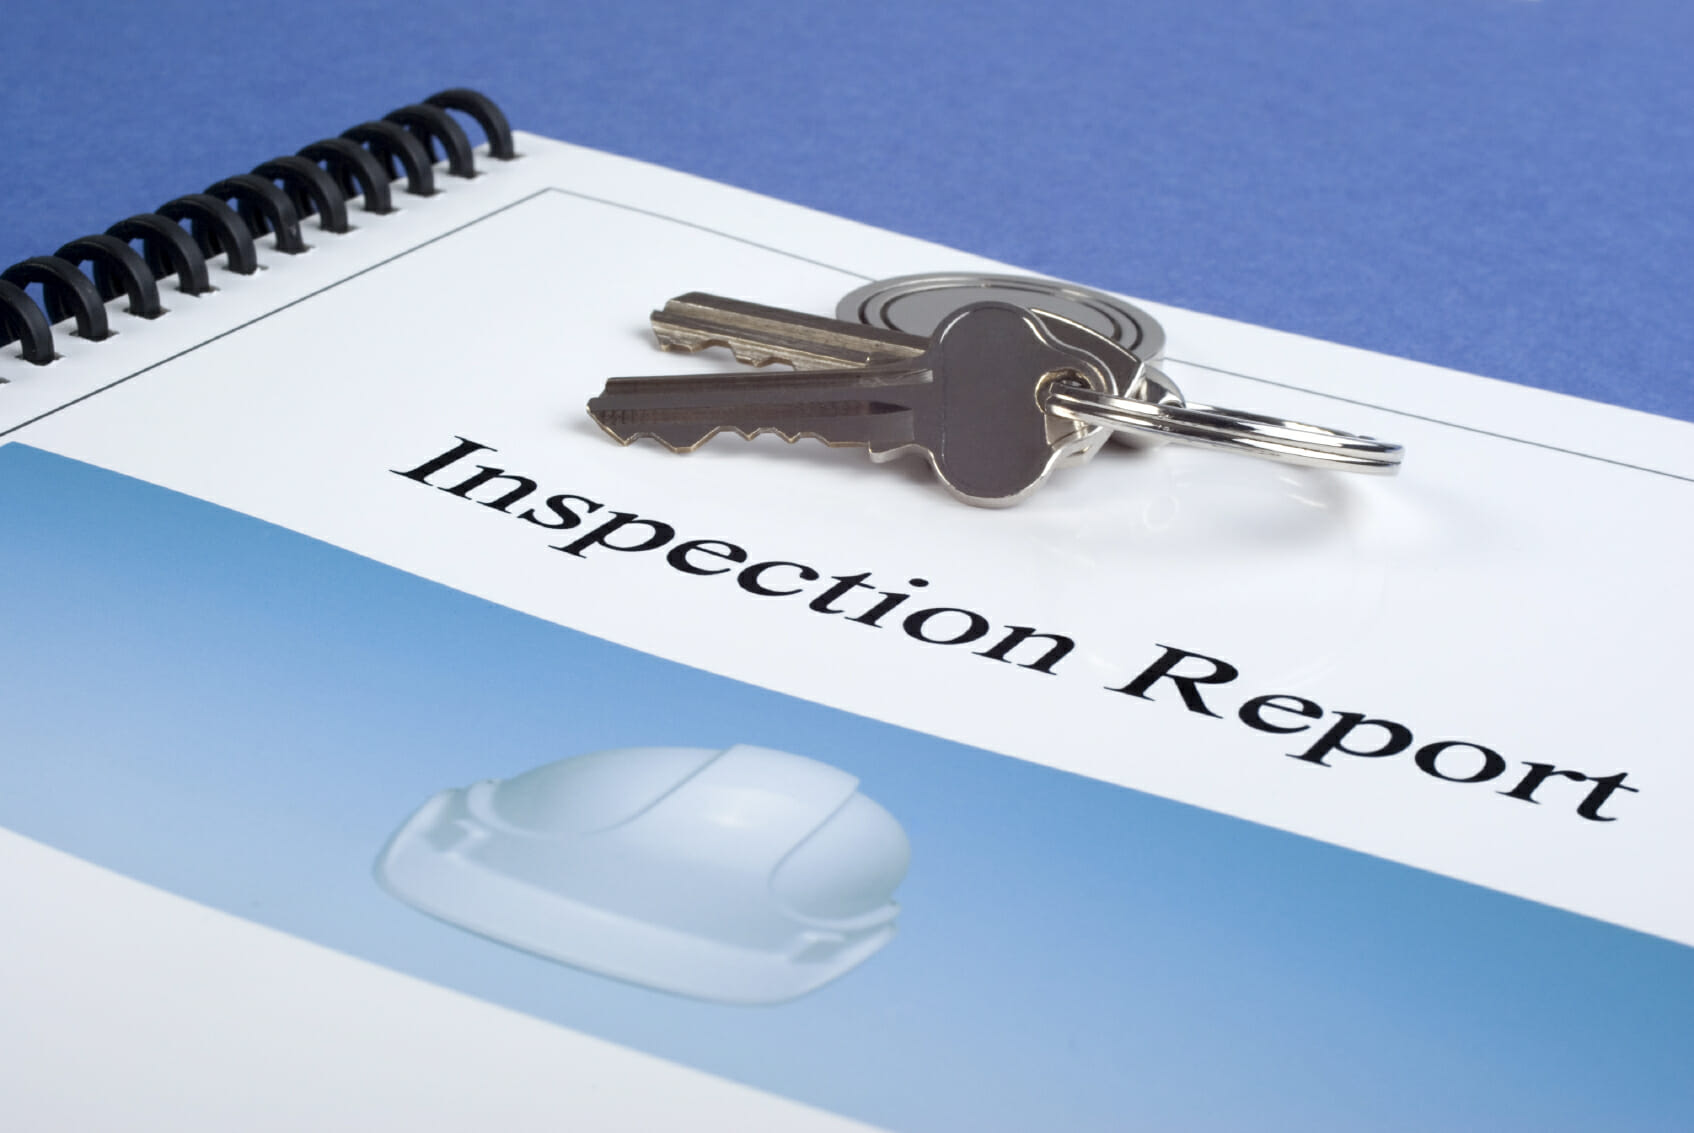 When An Inspection Report Reveals Problems With The Property